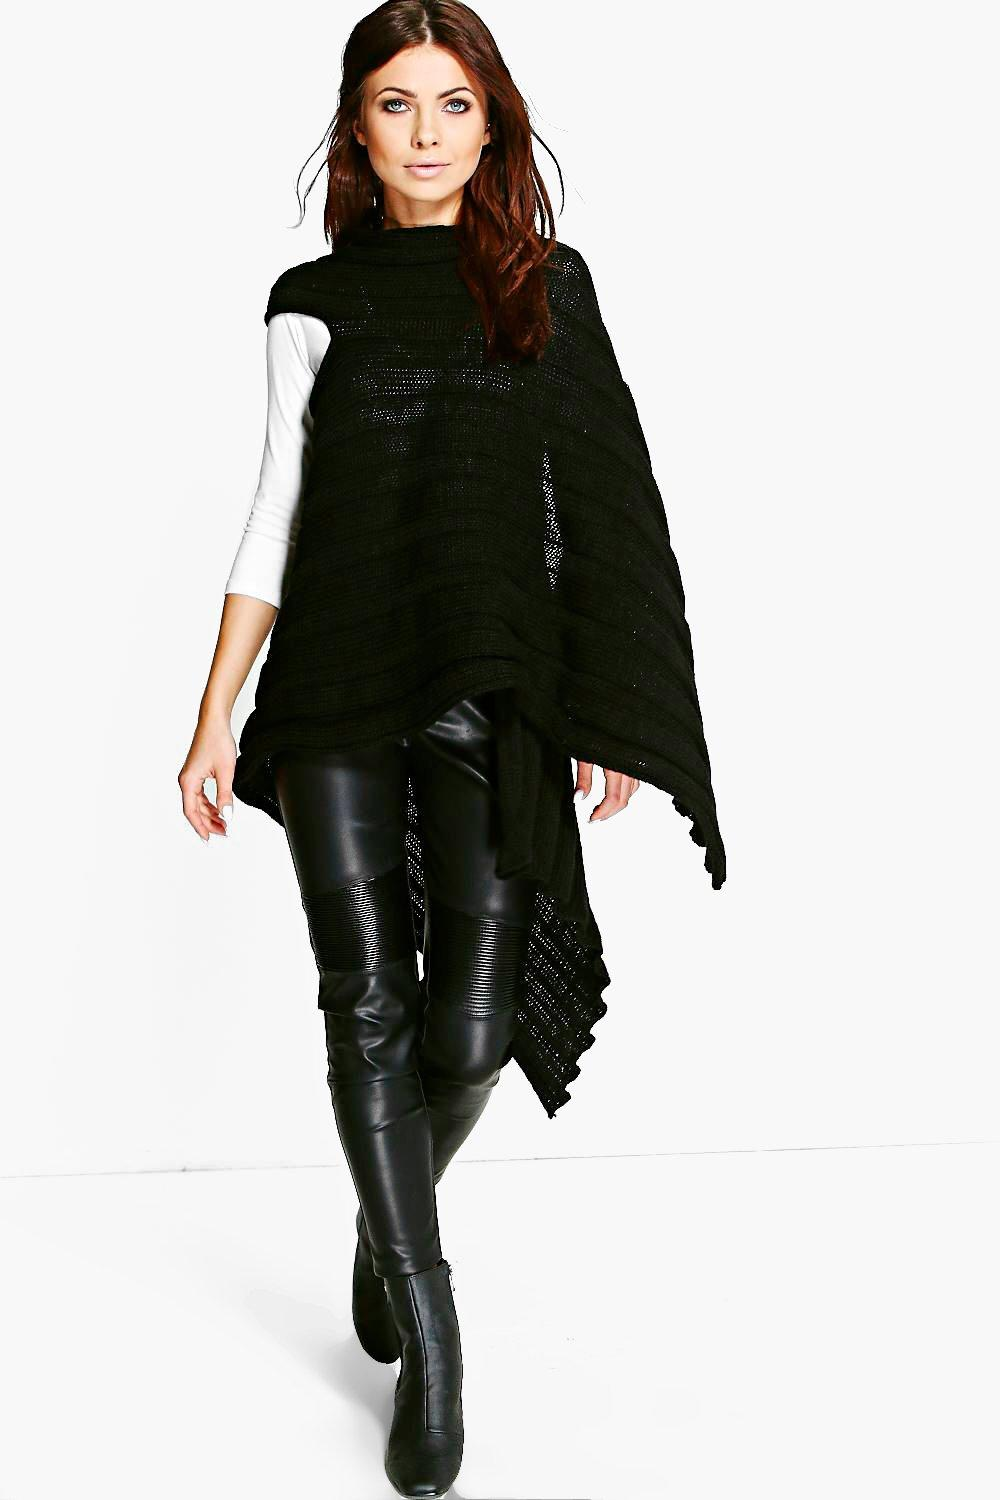 Louise Oversize Rib Arm Hole Cape Scarf